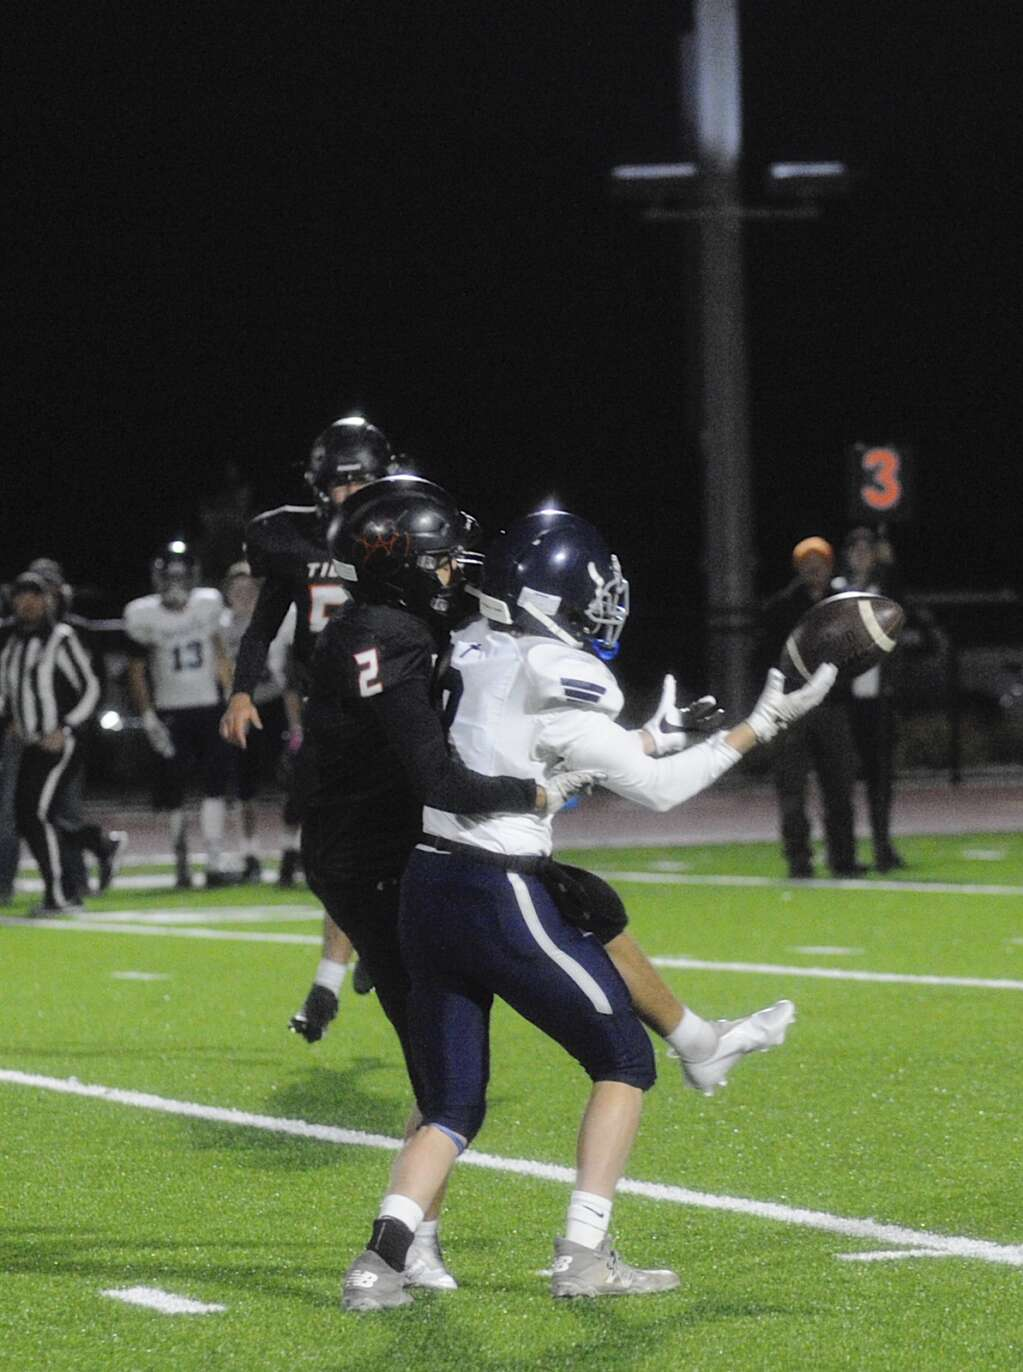 Hayden junior football player Owen Miller disrupts a pass during a game against Vail Christian at home on Friday.   Shelby Reardon/Steamboat Pilot & Today